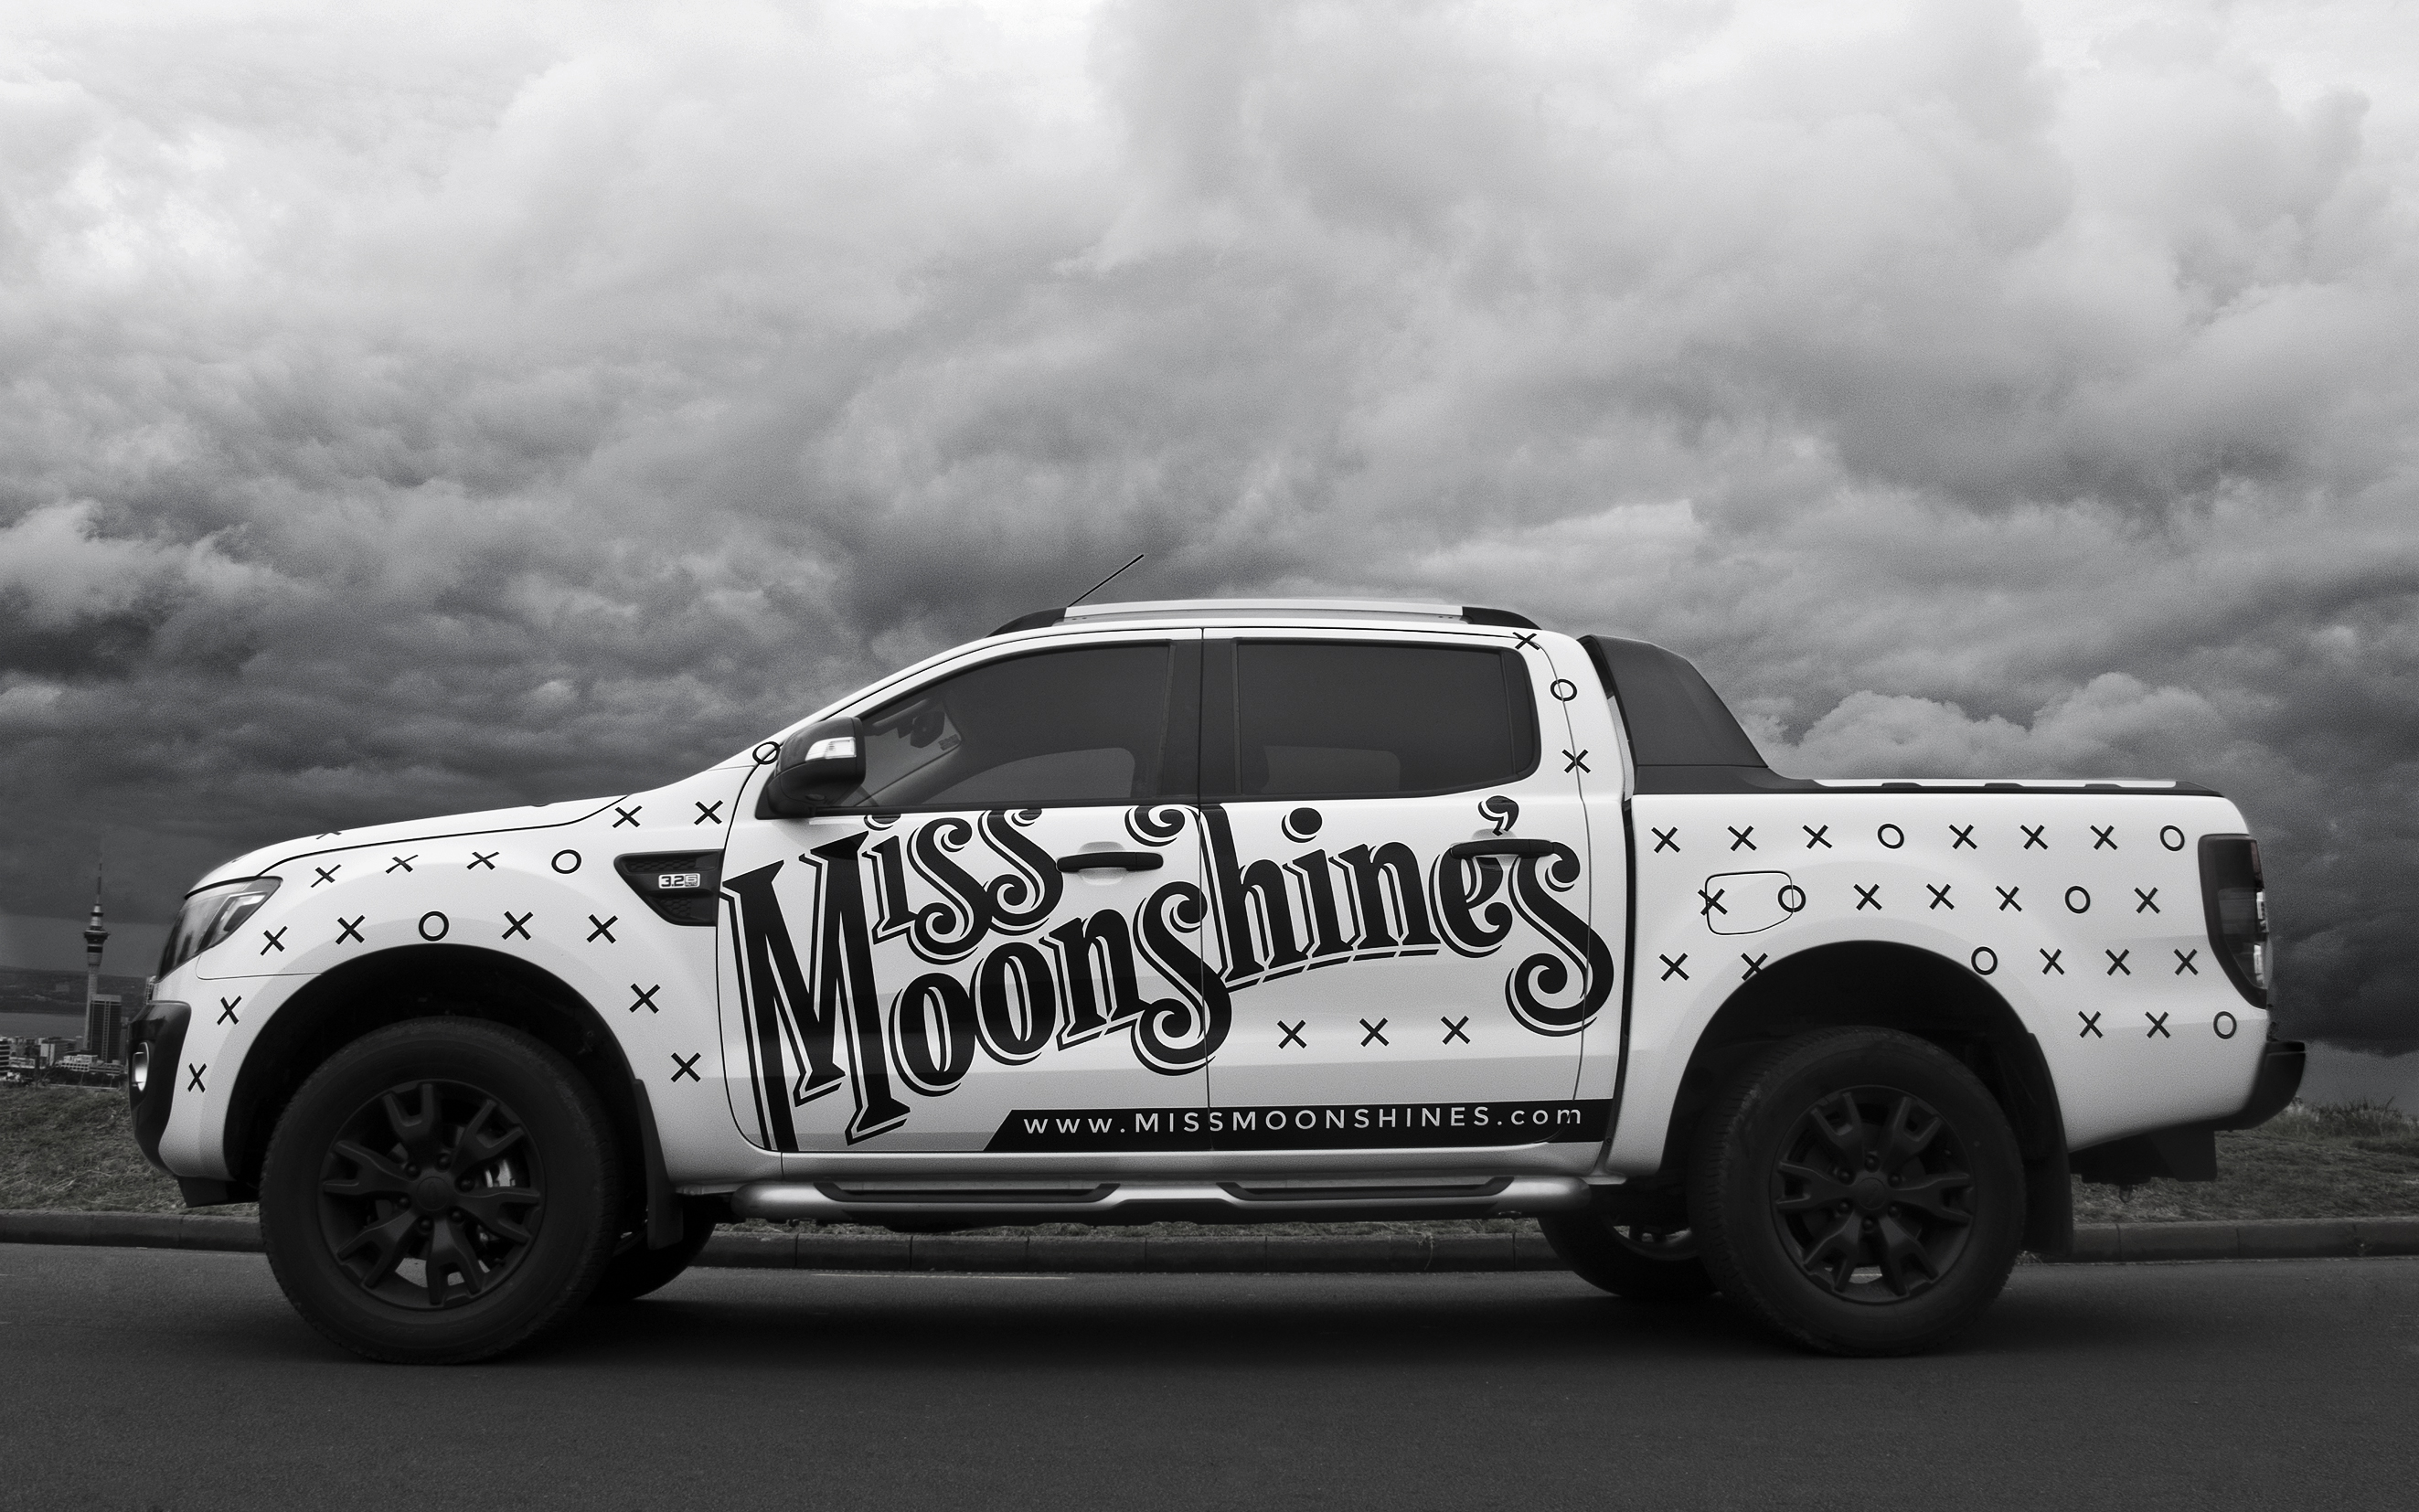 Miss Moonshine's Car Vinyl Design